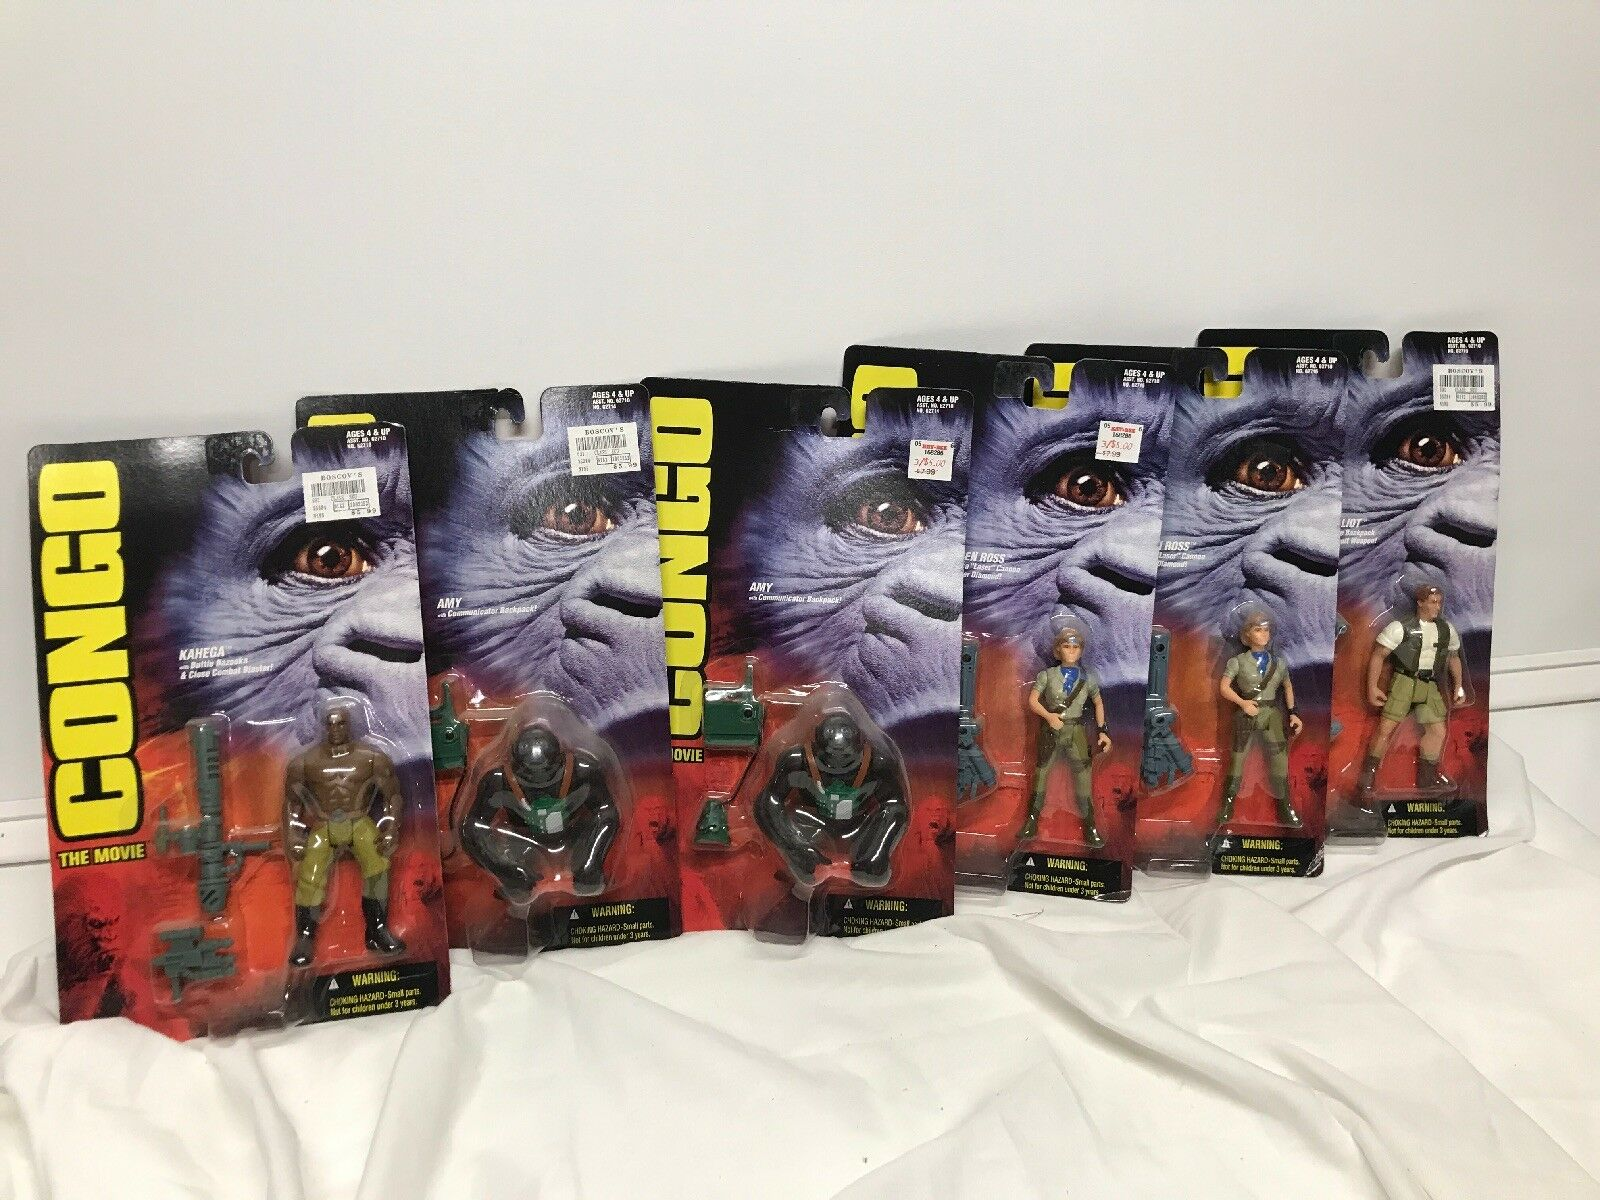 Vintage 1995 Kenner Congo The Movie Action Figures MOC Lot Of 6 Amy